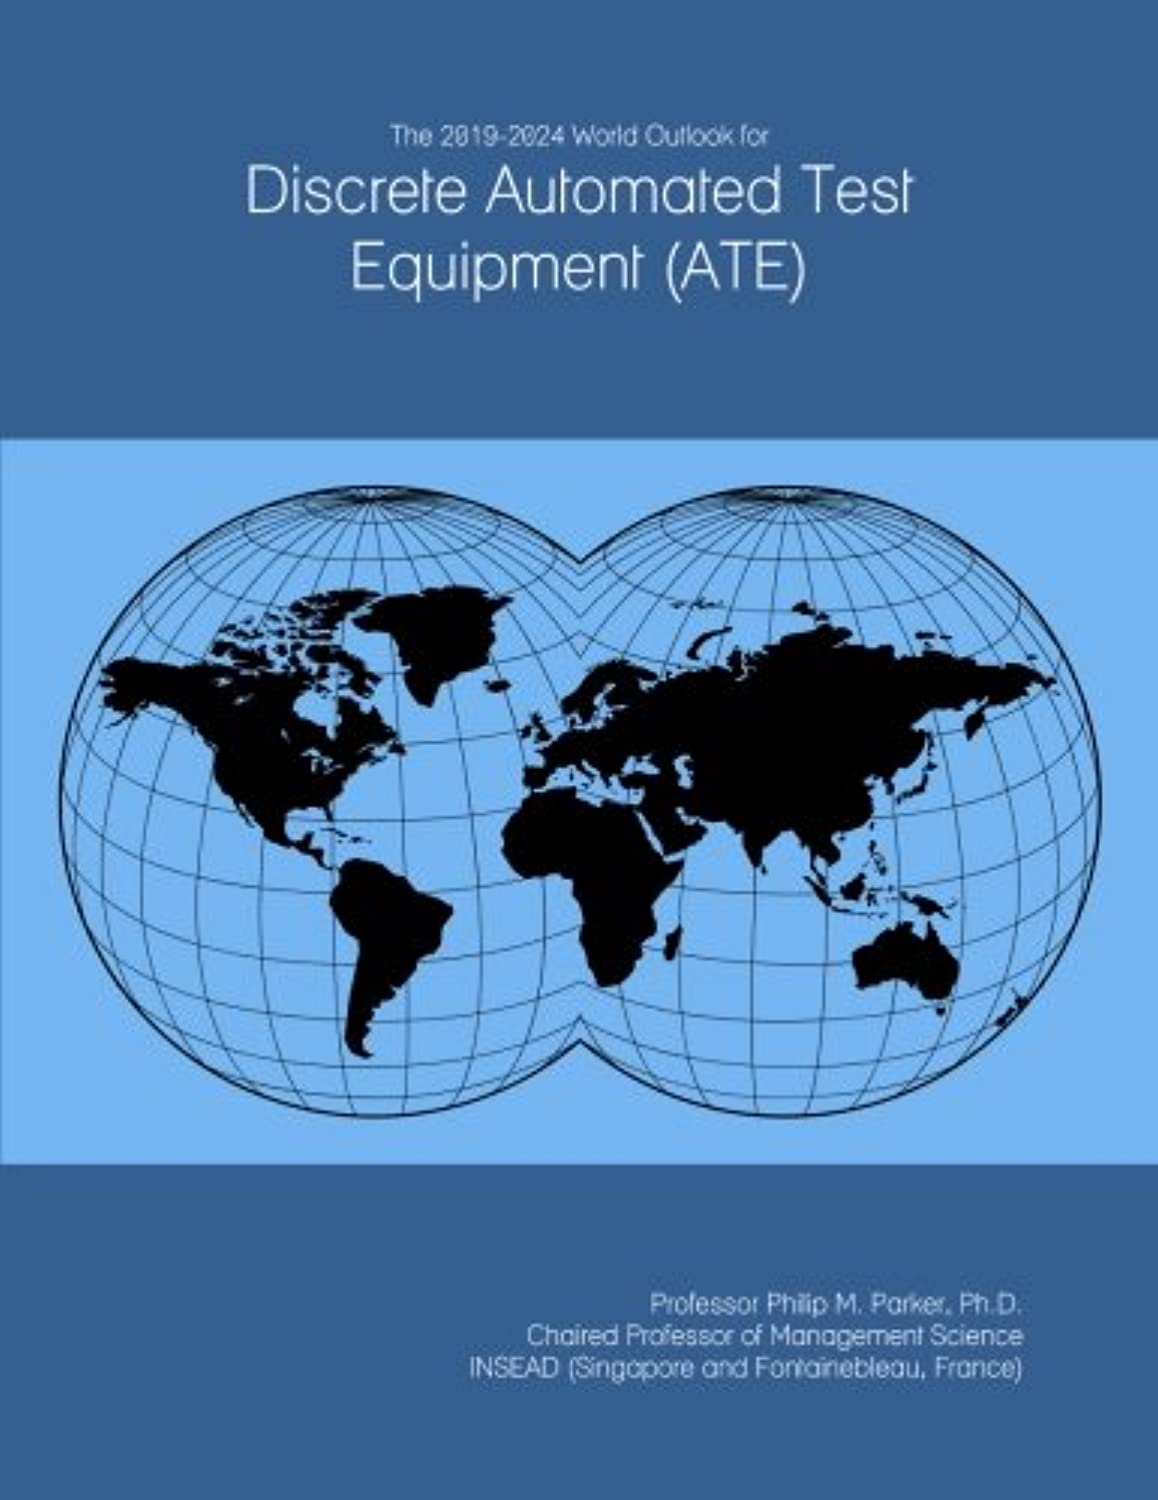 The 2019-2024 World Outlook for Discrete Automated Test Equipment (ATE)